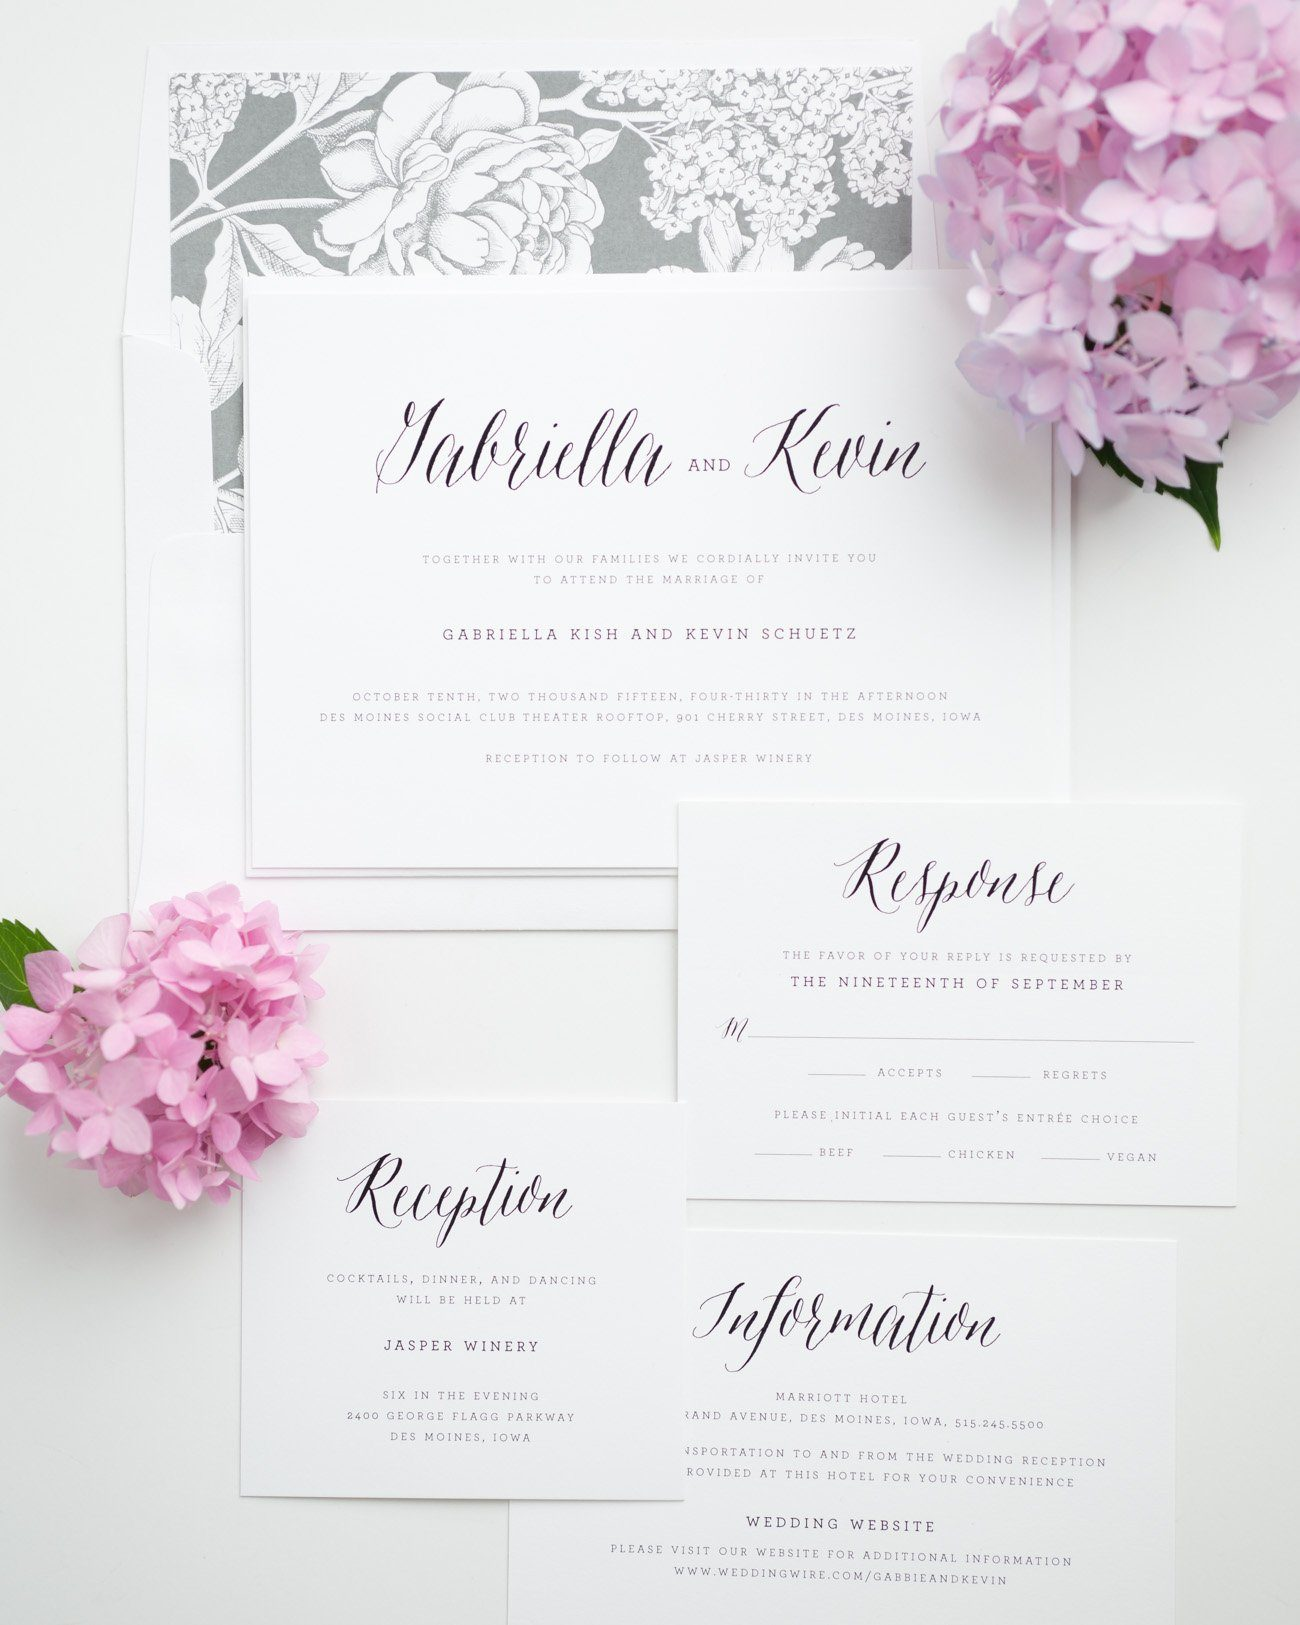 Rustic and Romantic Gray Invitations with a Floral Envelope Liner